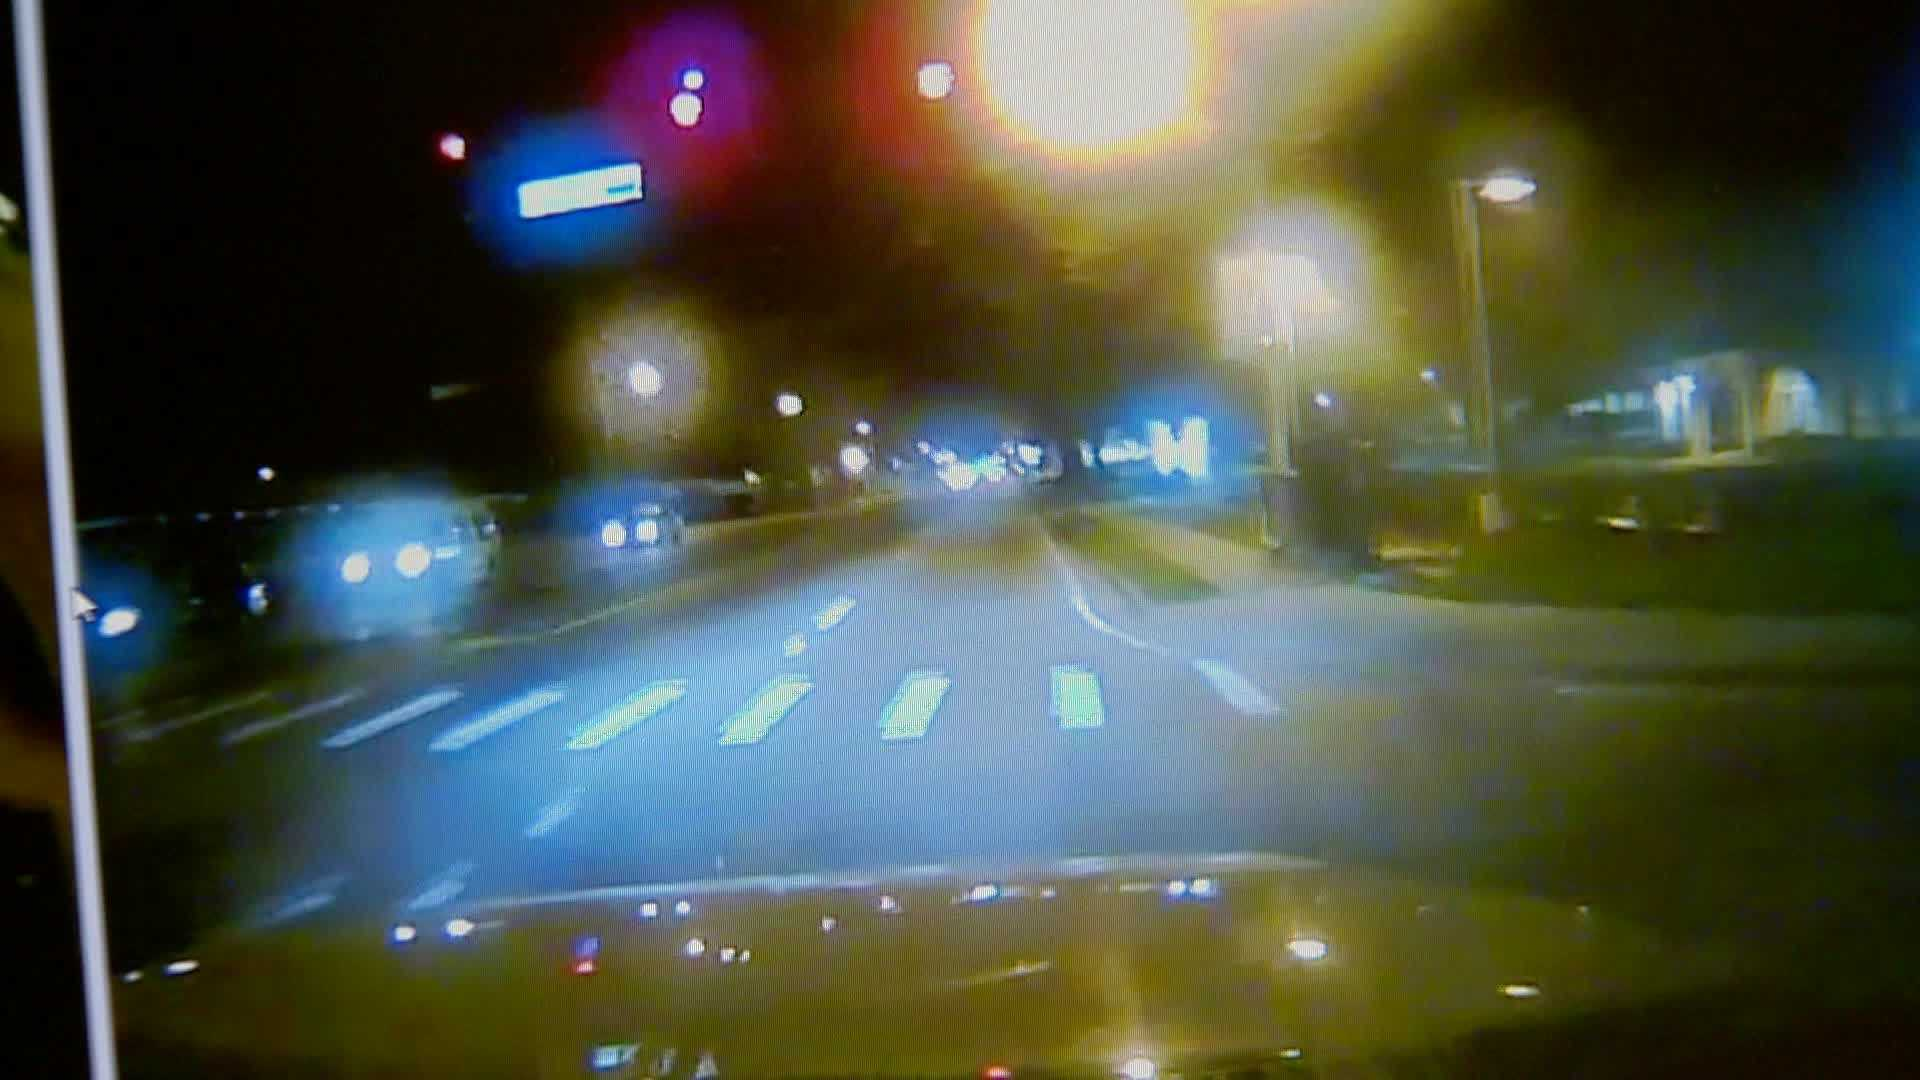 An Orlando police officer accuses his colleagues of racial profiling during a traffic stop. This raw video is from the traffic stop.